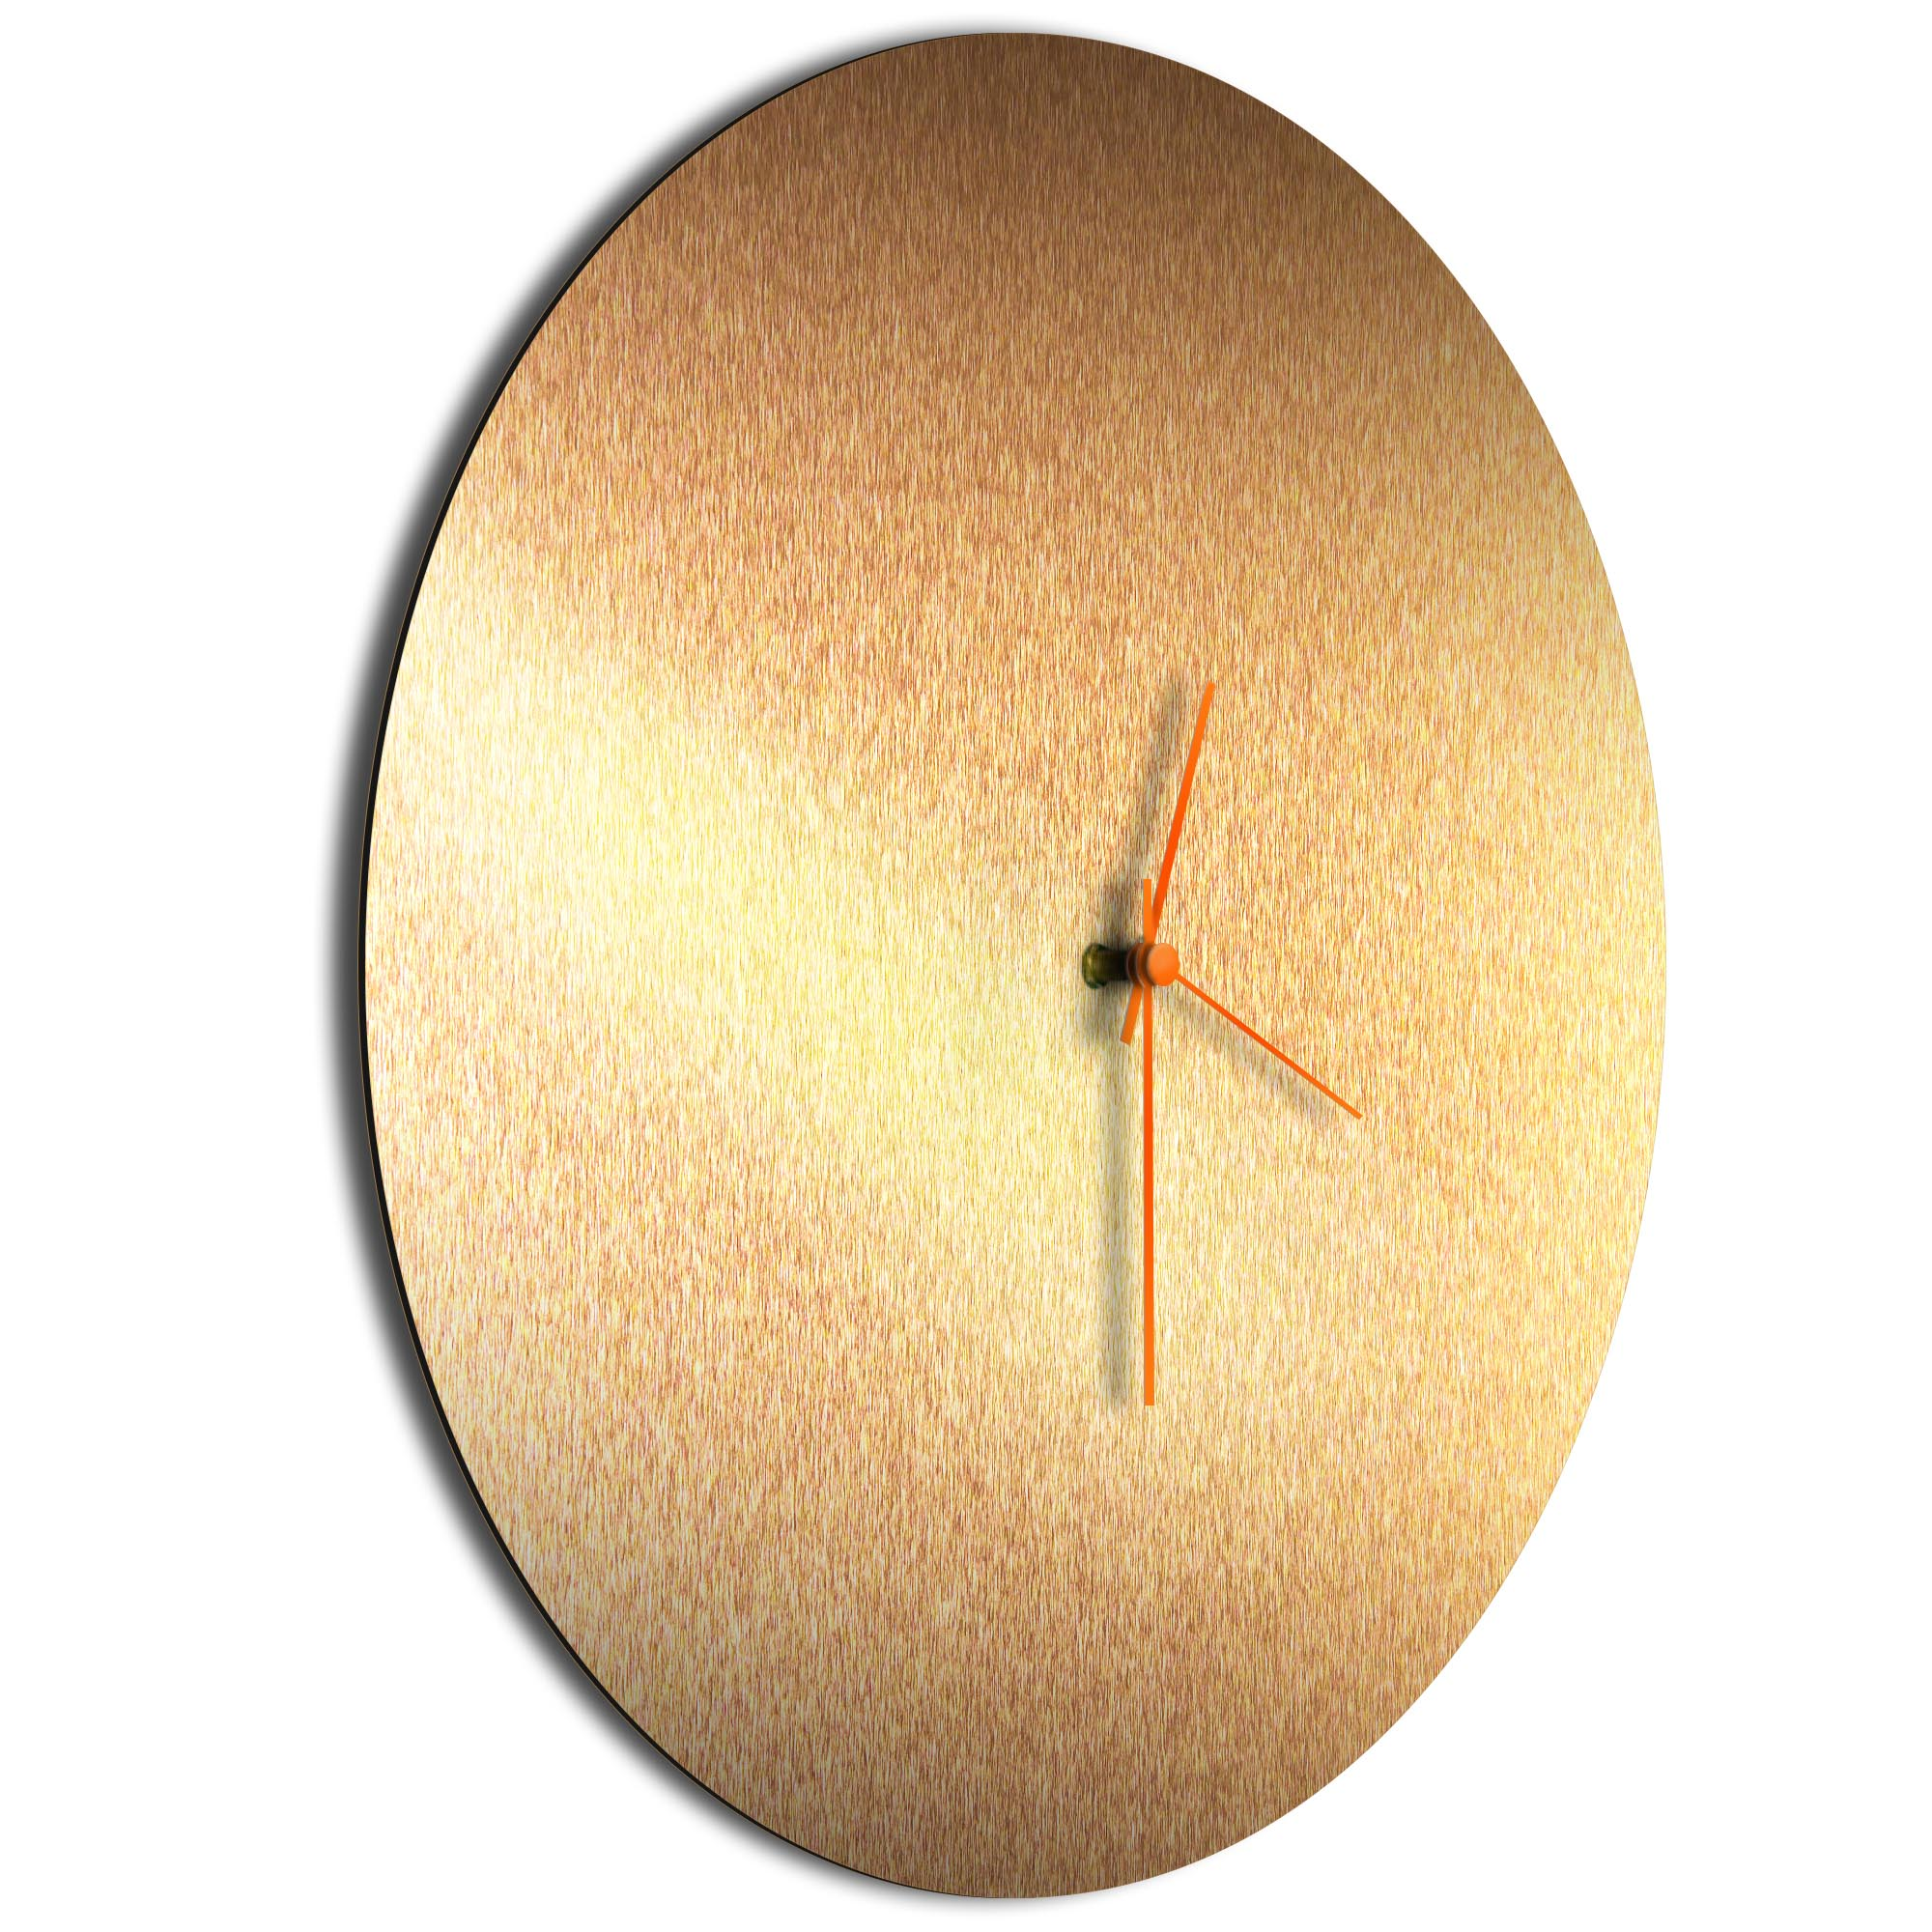 Bronzesmith Circle Clock Large Orange - Image 2